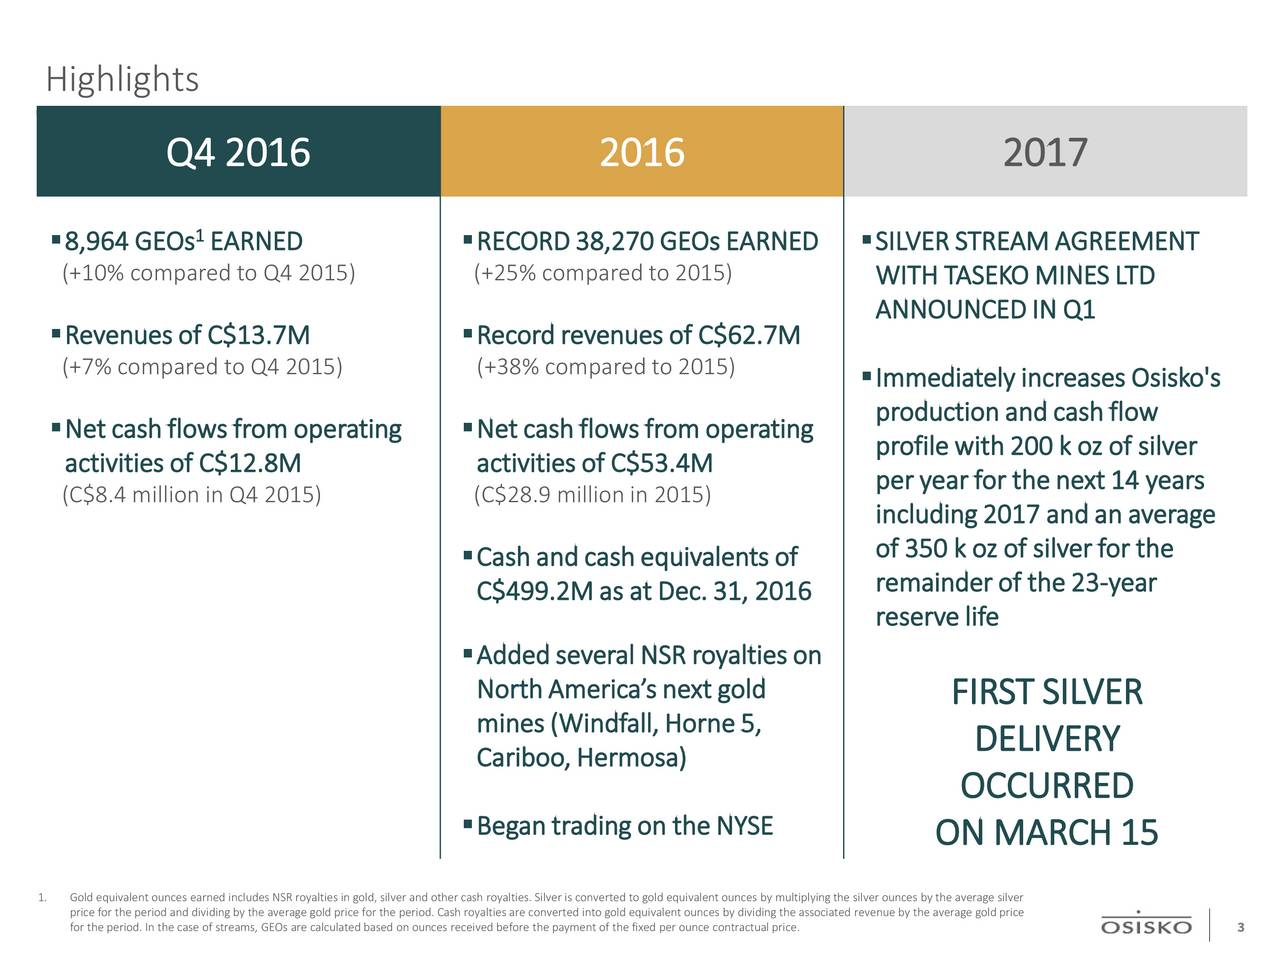 Q4 2016 2016 2017 8,964 GEOs EARNED RECORD 38,270 GEOs EARNED SILVER STREAM AGREEMENT (+10% compared to Q4 2015) (+25% compared to 2015) WITH TASEKO MINES LTD ANNOUNCED IN Q1 Revenues of C$13.7M Record revenues ofC$62.7M (+7% compared to Q4 2015) (+38% compared to 2015) Immediately increasesOsisko's production and cash flow Net cash flows from operating Net cash flows from operating activities ofC$12.8M activities of C$53.4M profile with200 koz of silver (C$8.4million in Q4 2015) (C$28.9 million in 2015) peryear for the next 14 years including 2017 and an average of 350 k oz of silver for the Cash and cash equivalents of C$499.2M as at Dec. 31, 2016 remainder of the 23-year reserve life Added several NSR royalties on North Americas next gold FIRST SILVER mines (Windfall, Horne 5, DELIVERY Cariboo, Hermosa) OCCURRED Begantrading on the NYSE ON MARCH 15 1. price for the period and dividing by the average gold price for the period. Cash royalties are converted into gold equivalent ounces by dividing the associated revenue by the average gold priceer for the period. In the case of streams, GEOs are calculated based on ounces received before the 3ayment of the fixed per ounce contractual price.